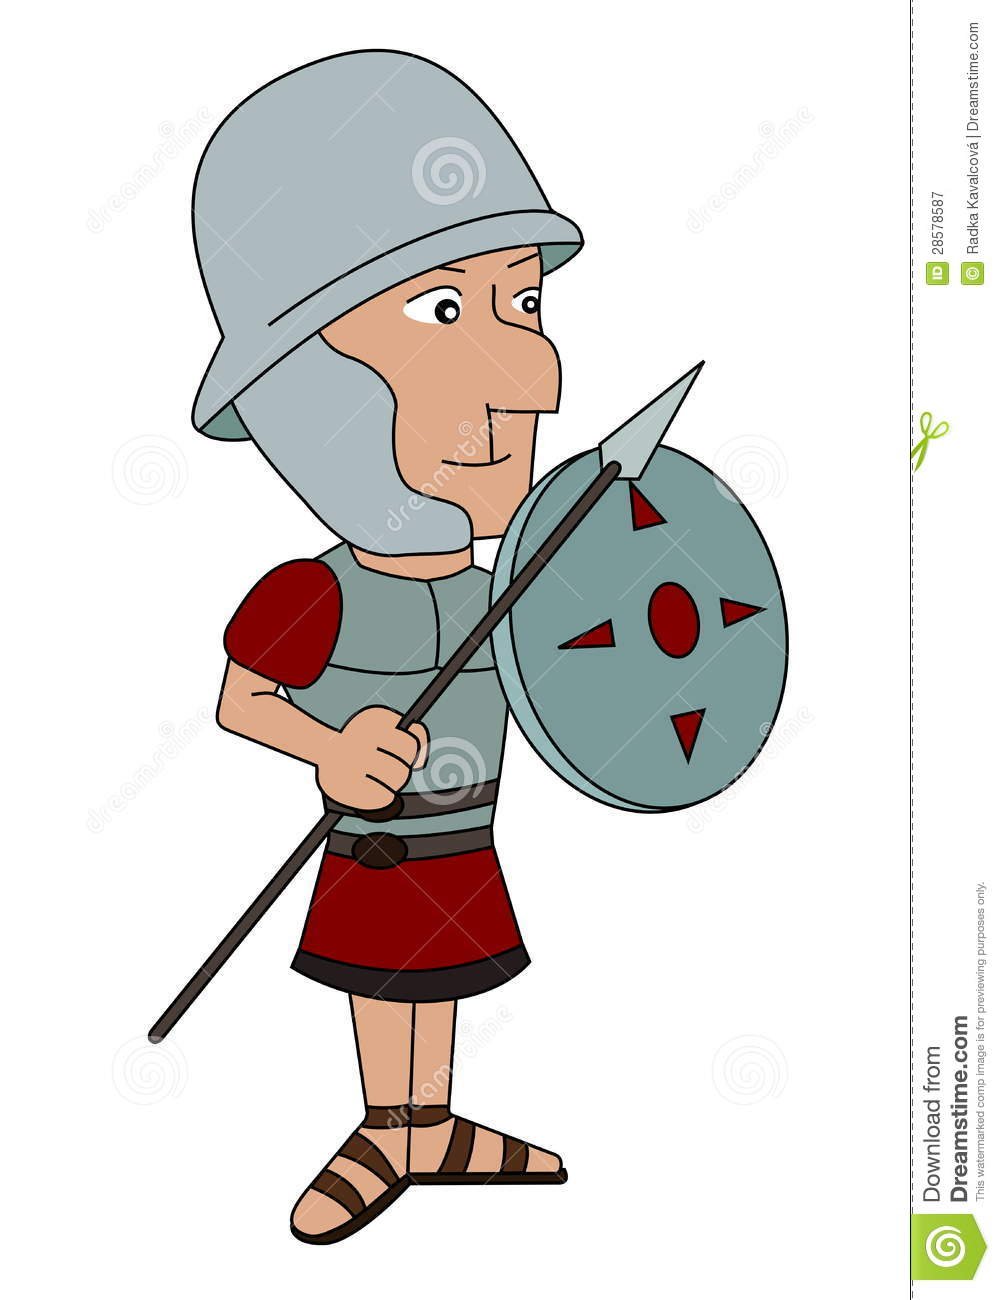 ancient roman soldier cartoon royalty free stock photography